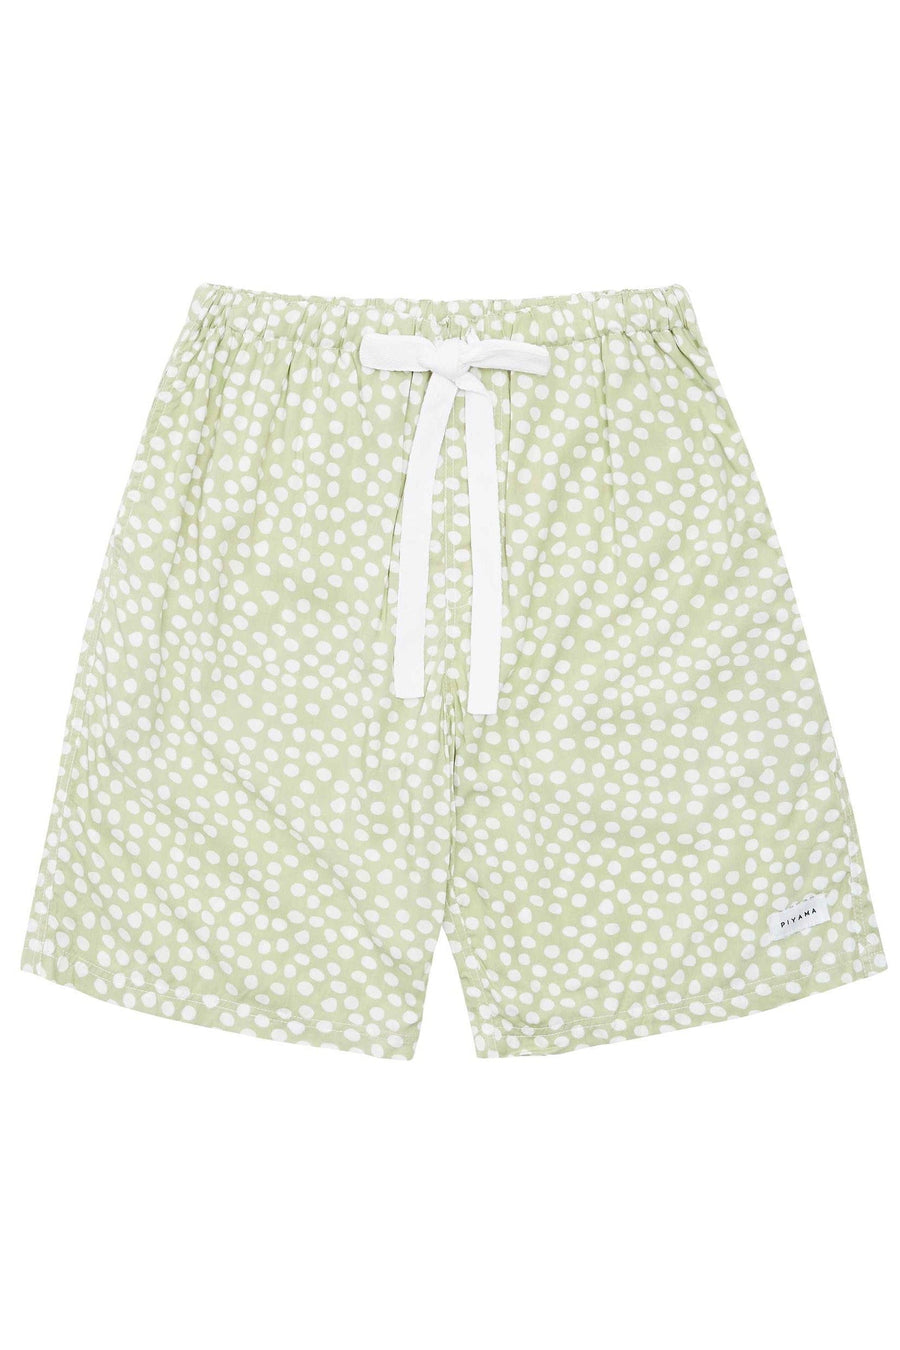 Men's Boxer Shorts - Reverse Dot - Sage Green